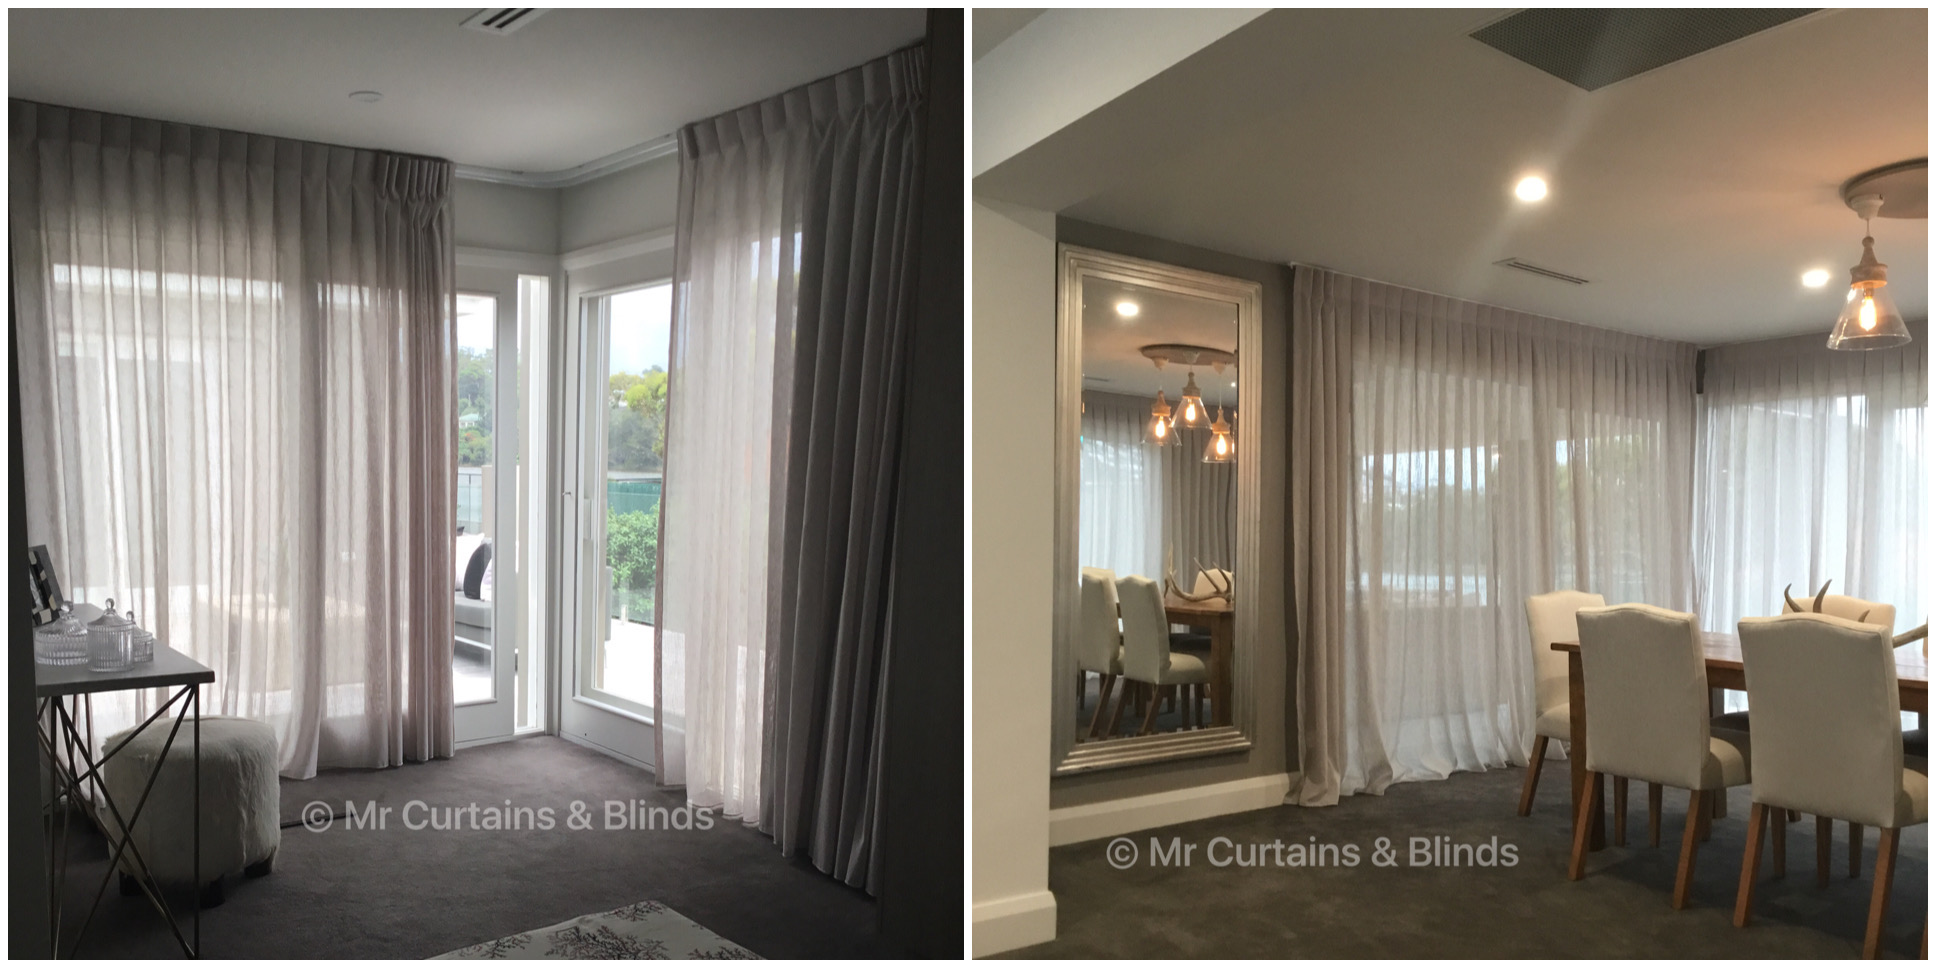 Sheer Curtains Mr Curtains and Blinds Central Coast